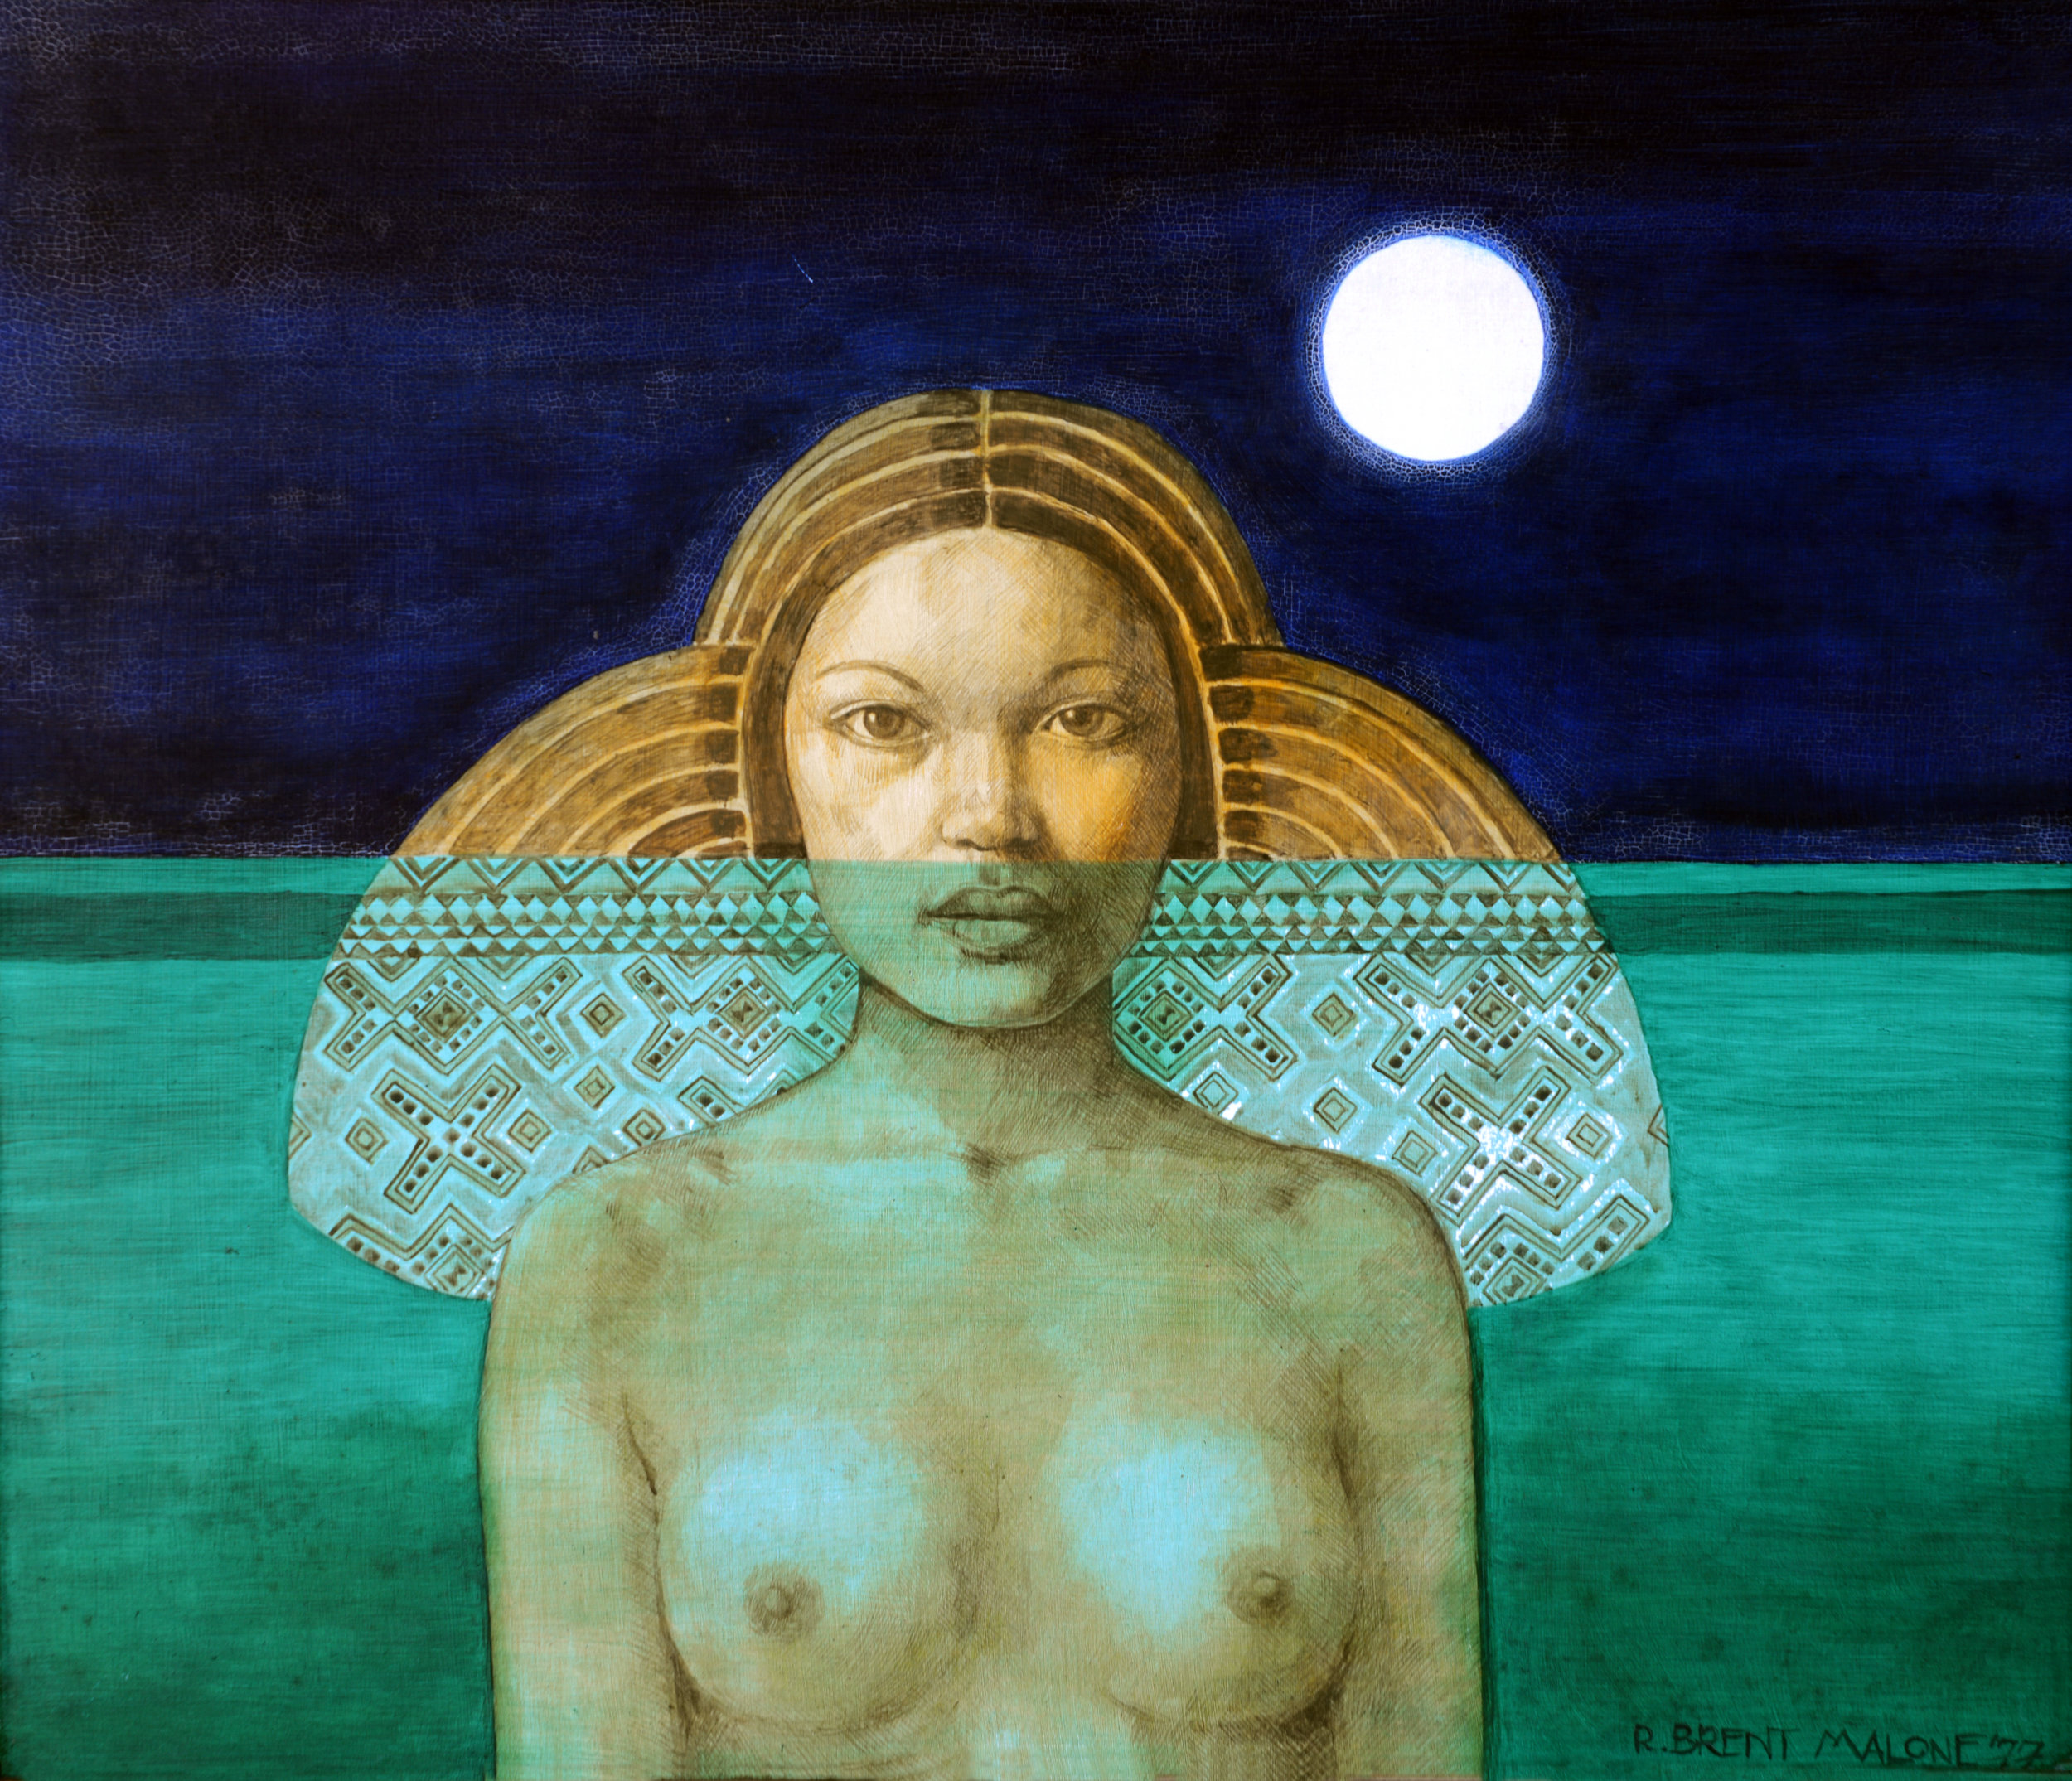 """""""Lucayan Princess"""" (1977), R Brent Malone, oil on canvas, 24 x 27. Part of the D'Aguilar Art Foundation (formerly in the collection of June Knight)."""